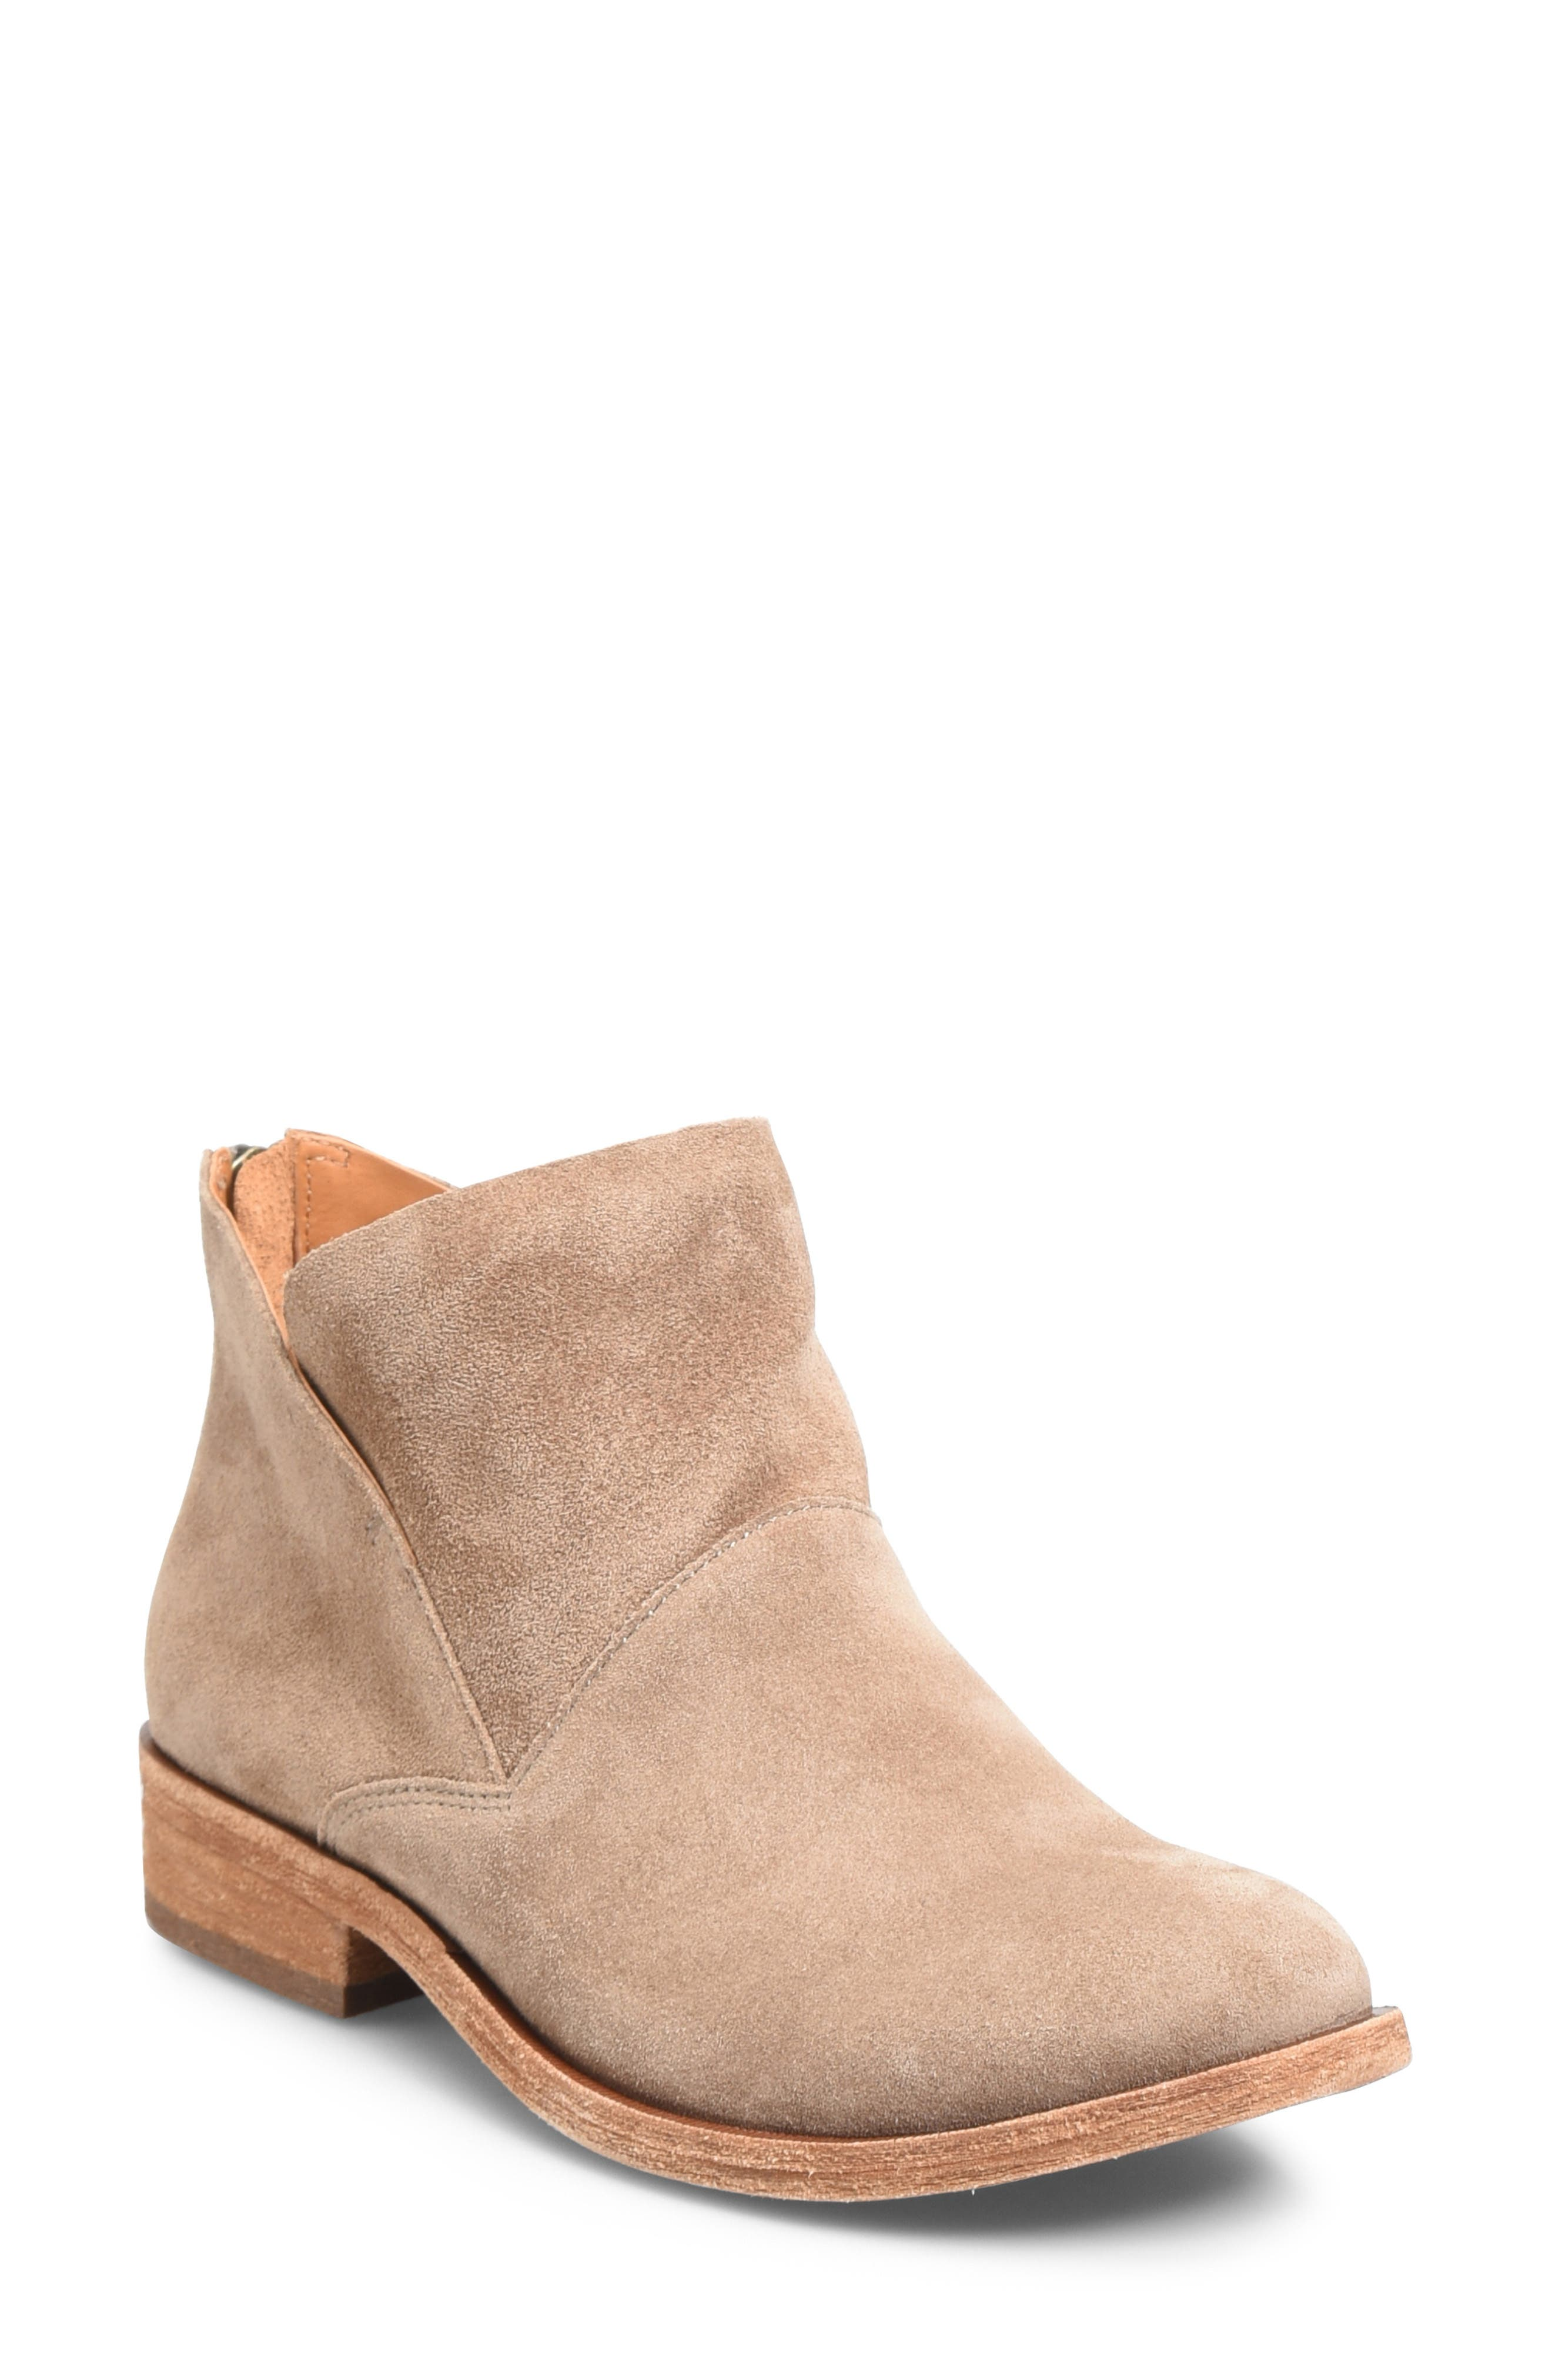 Ryder Ankle Boot,                             Main thumbnail 1, color,                             TAUPE GREY SUEDE